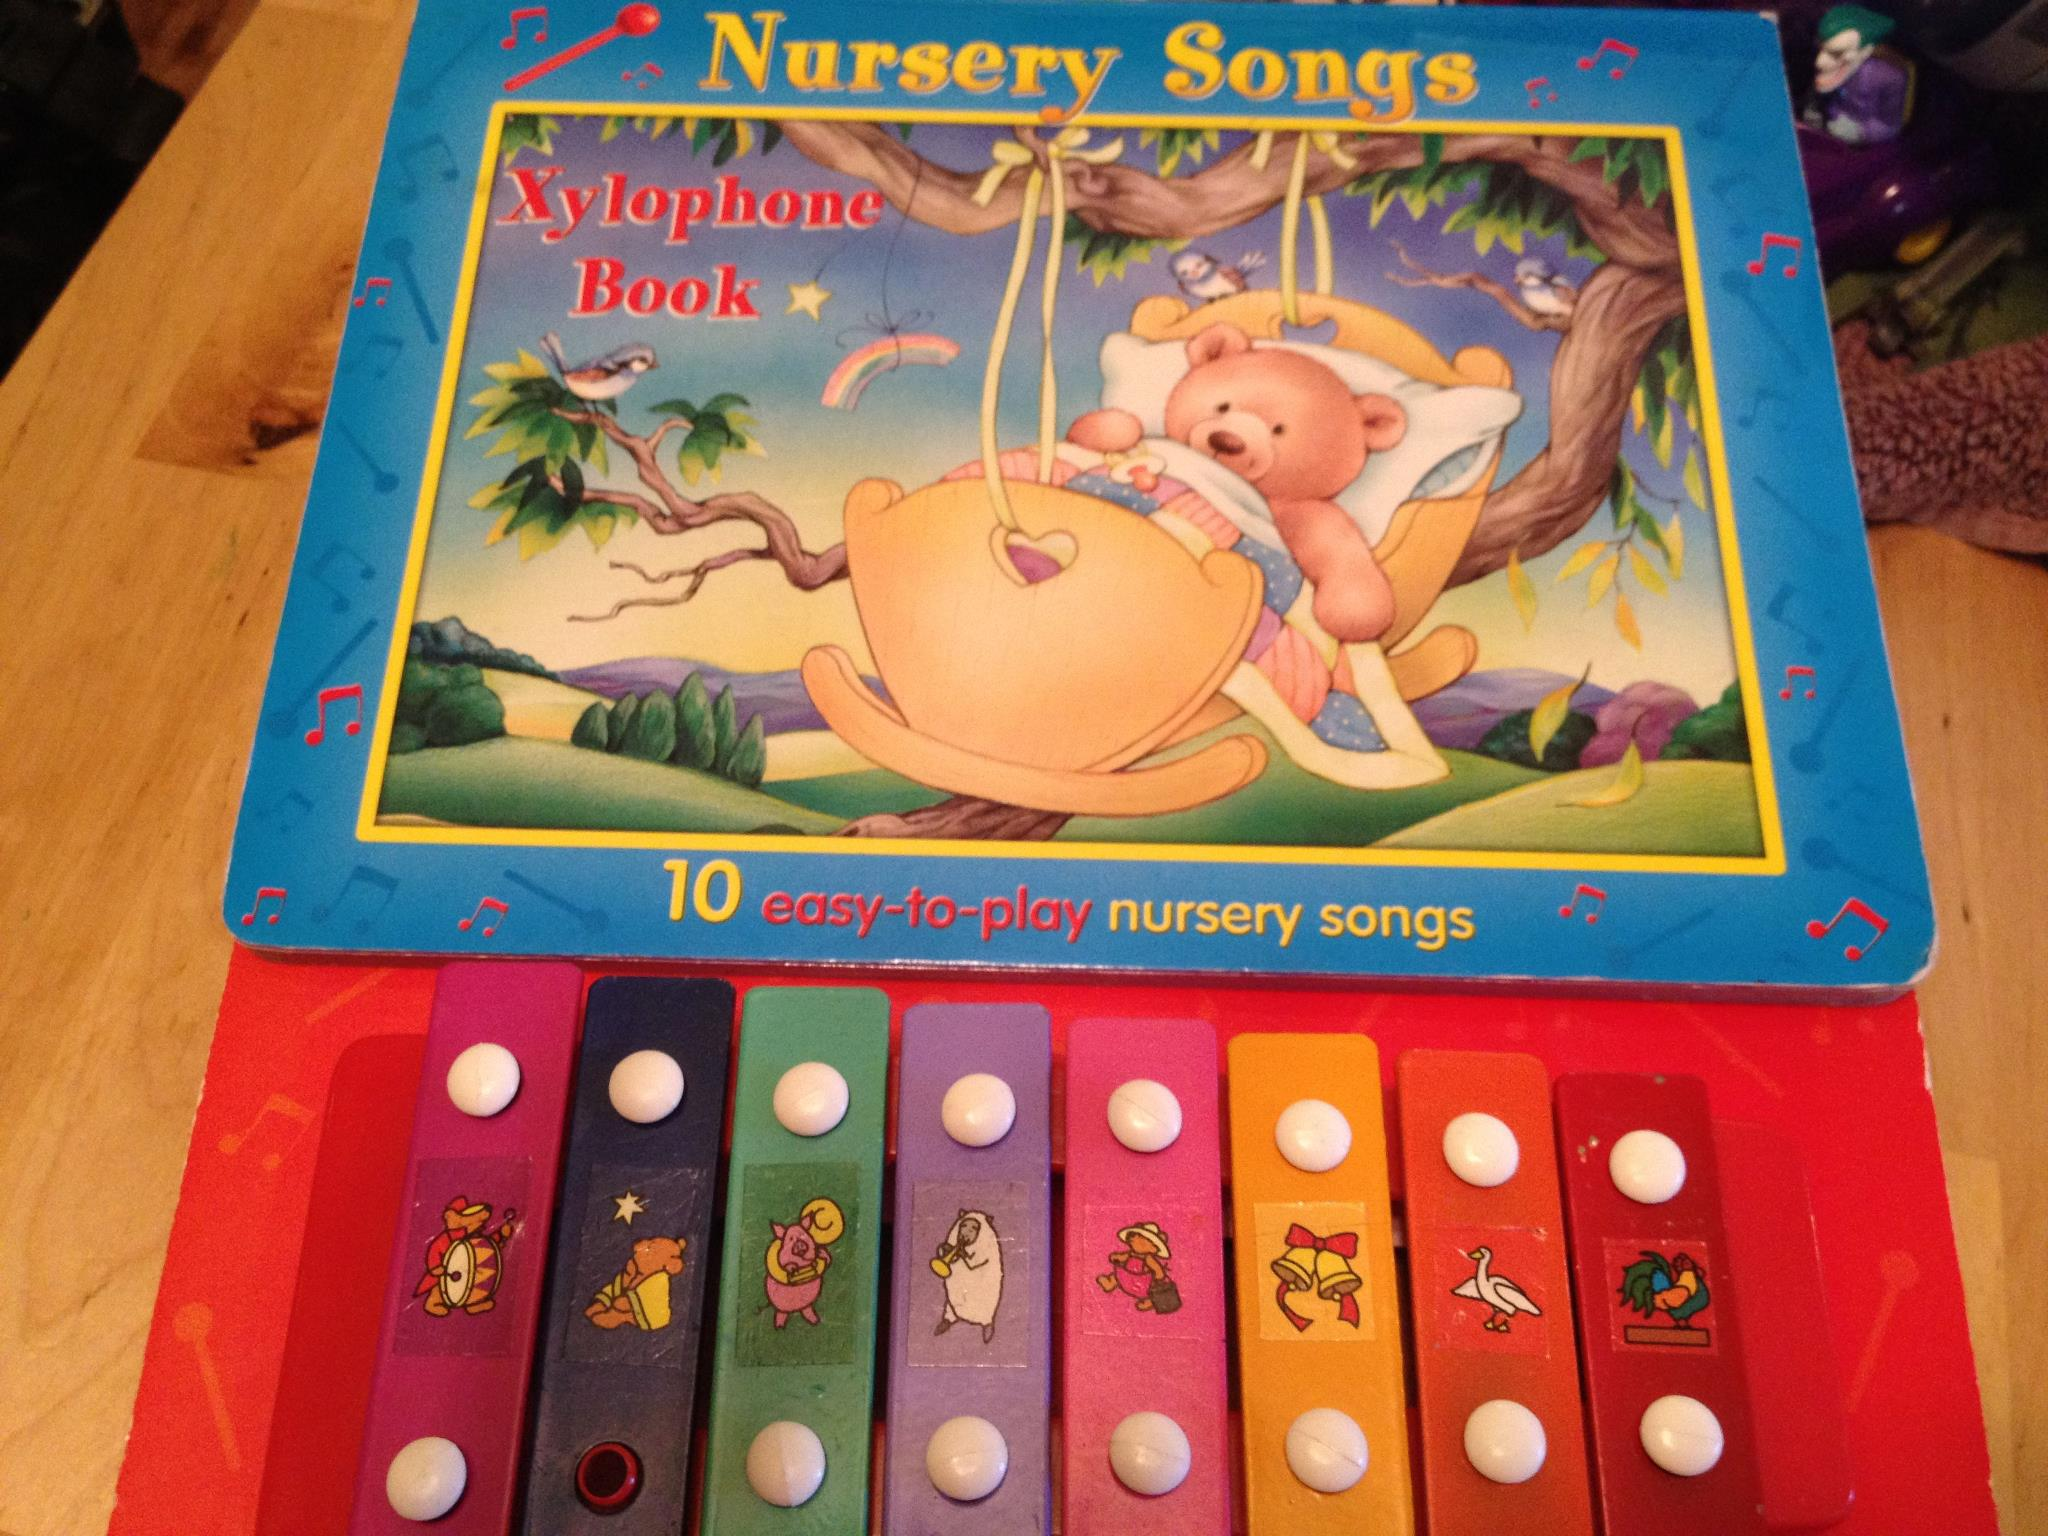 2006 Nursery Songs Book With Built In Xylophone: 62,500 ppm Lead